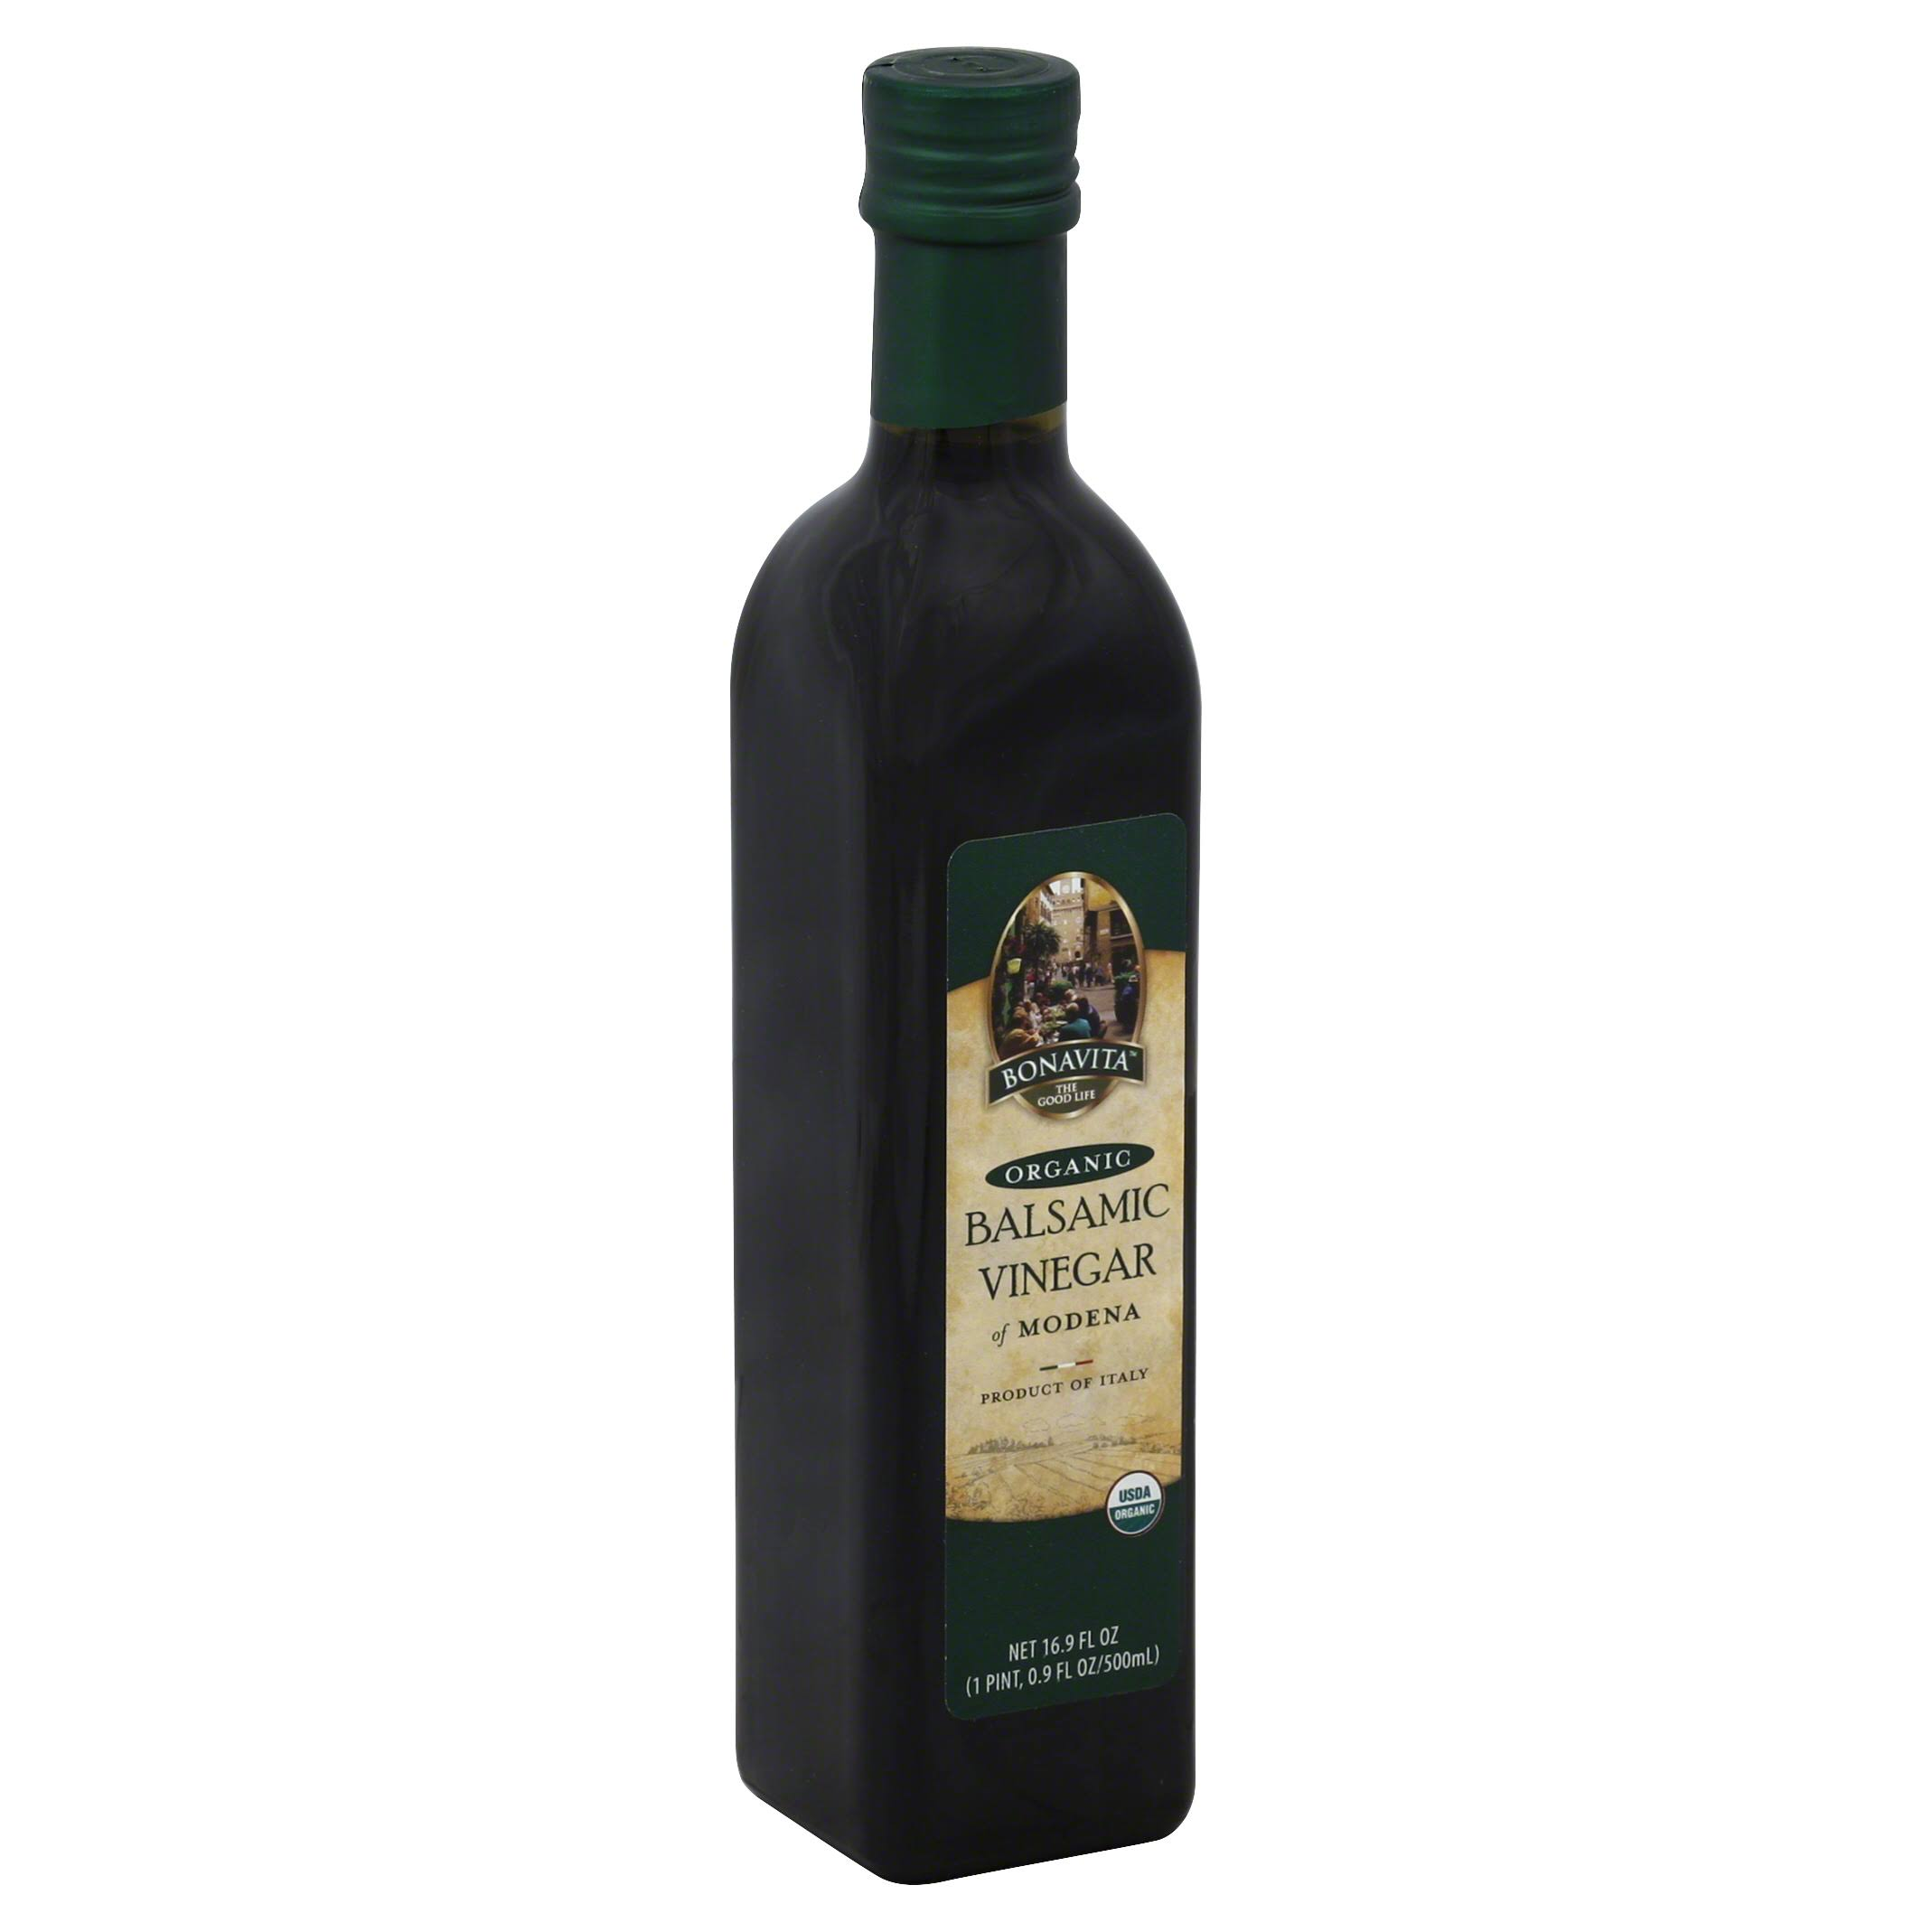 Bonavita Organic Balsamic Vinegar of Modena - 16.9oz